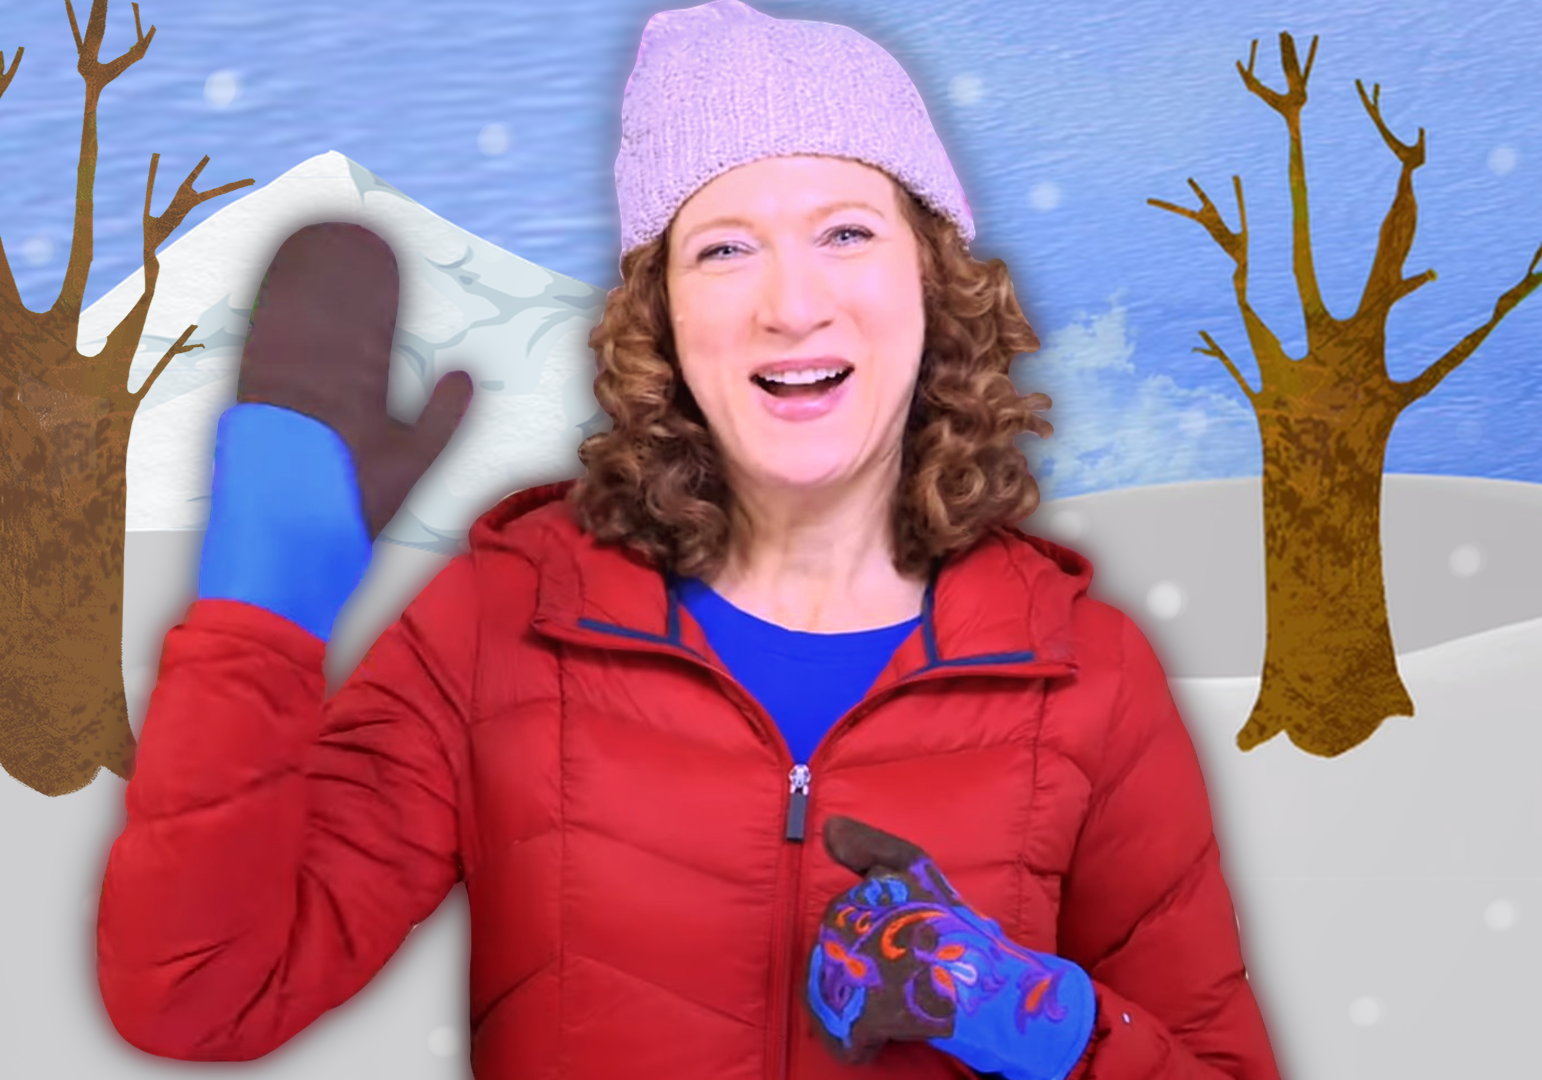 When It's Cold by The Laurie Berkner Band